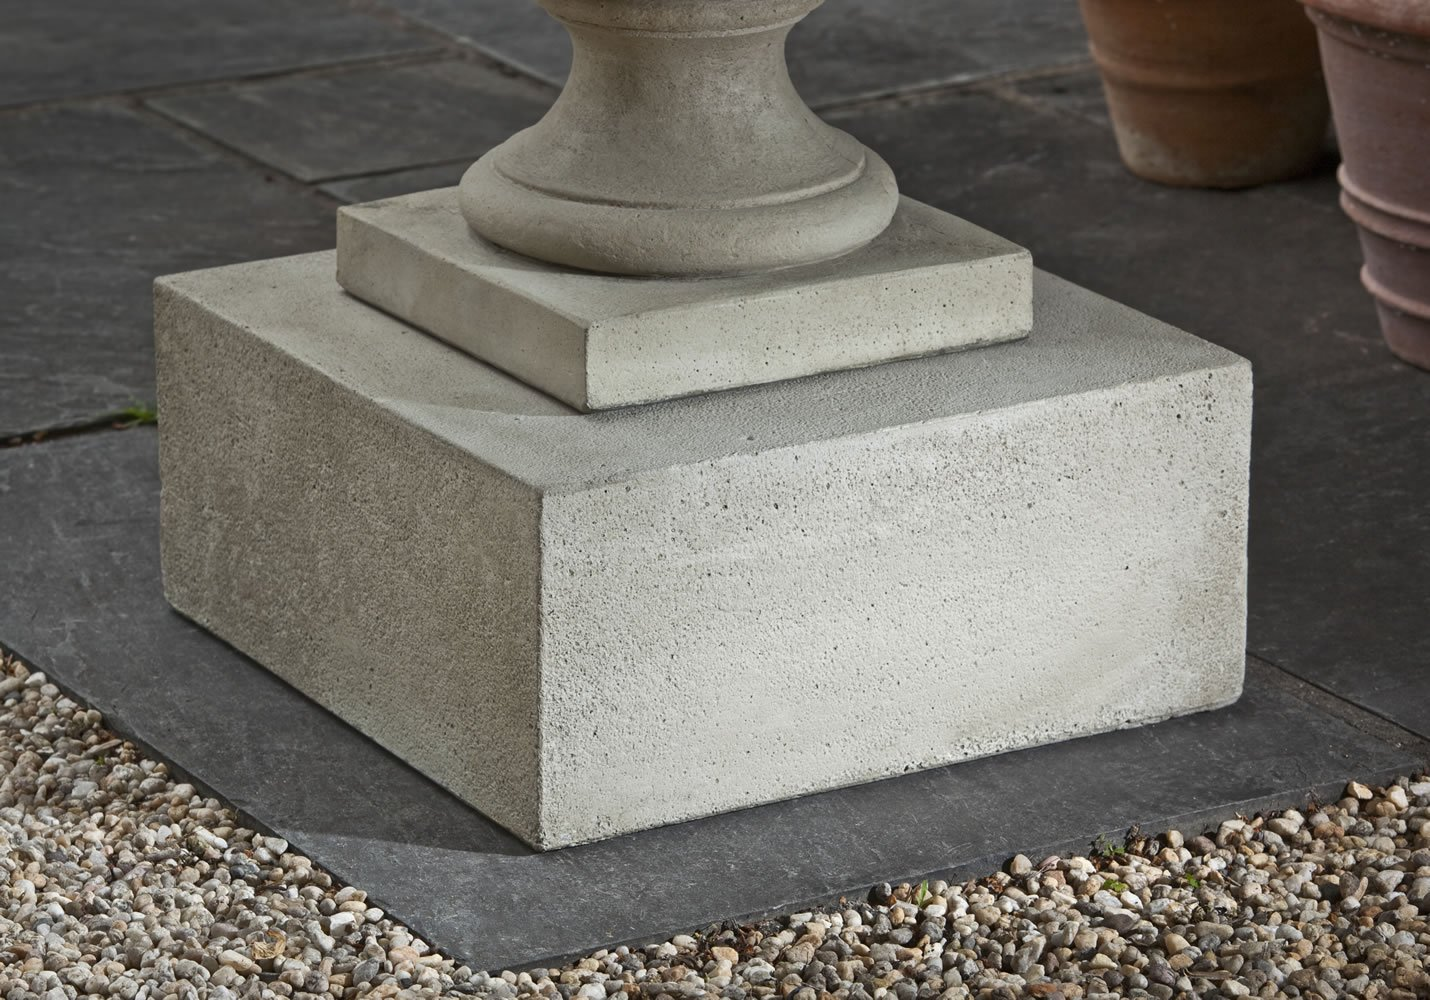 Campania International PD-173-VE Textured Square Pedestal, Low, Verde Finish